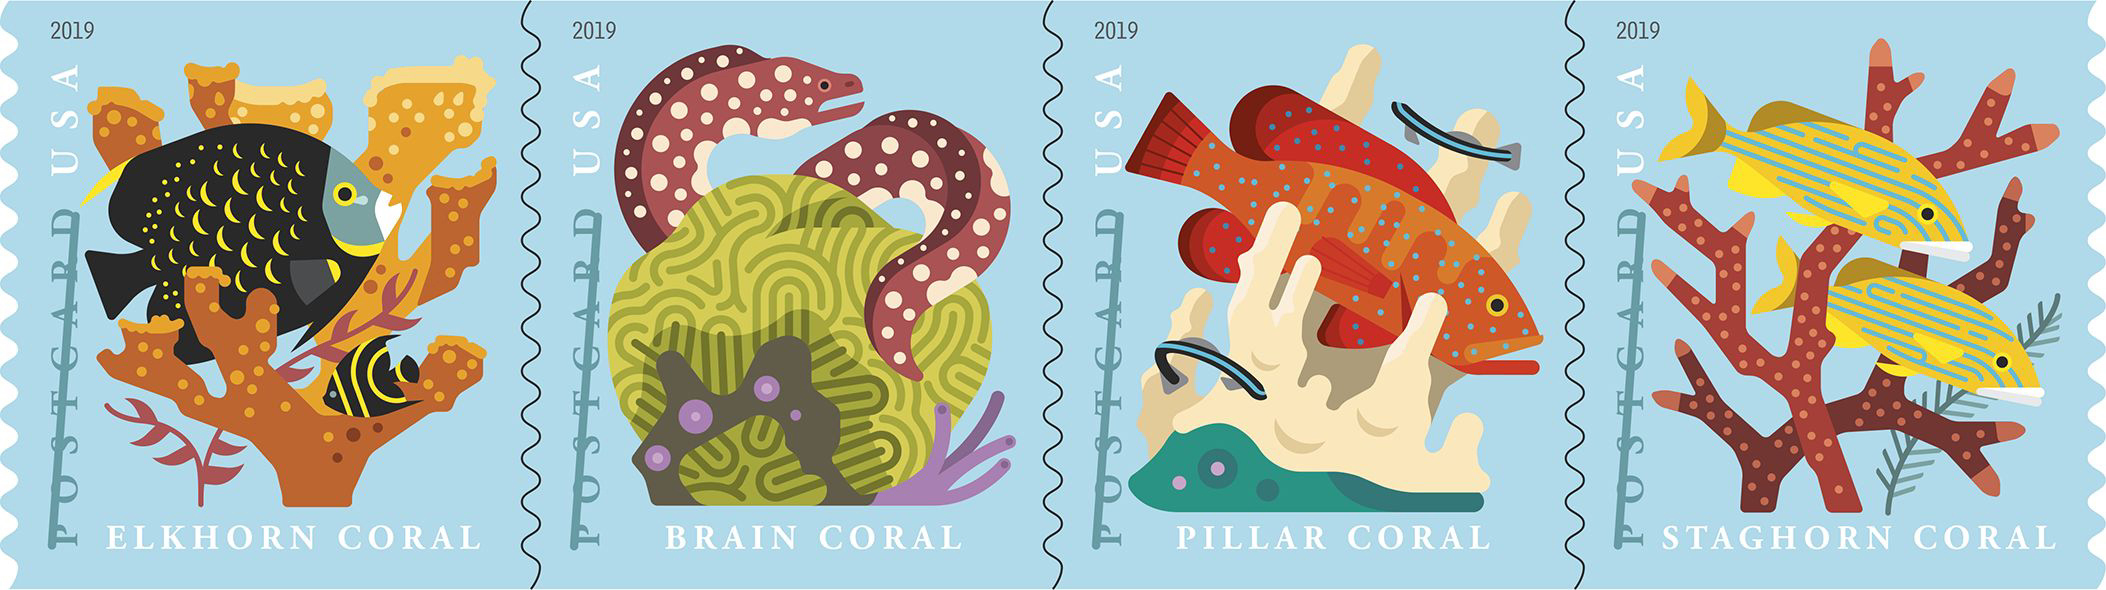 Coral Reefs postcard coil stamps - possibly January 2019